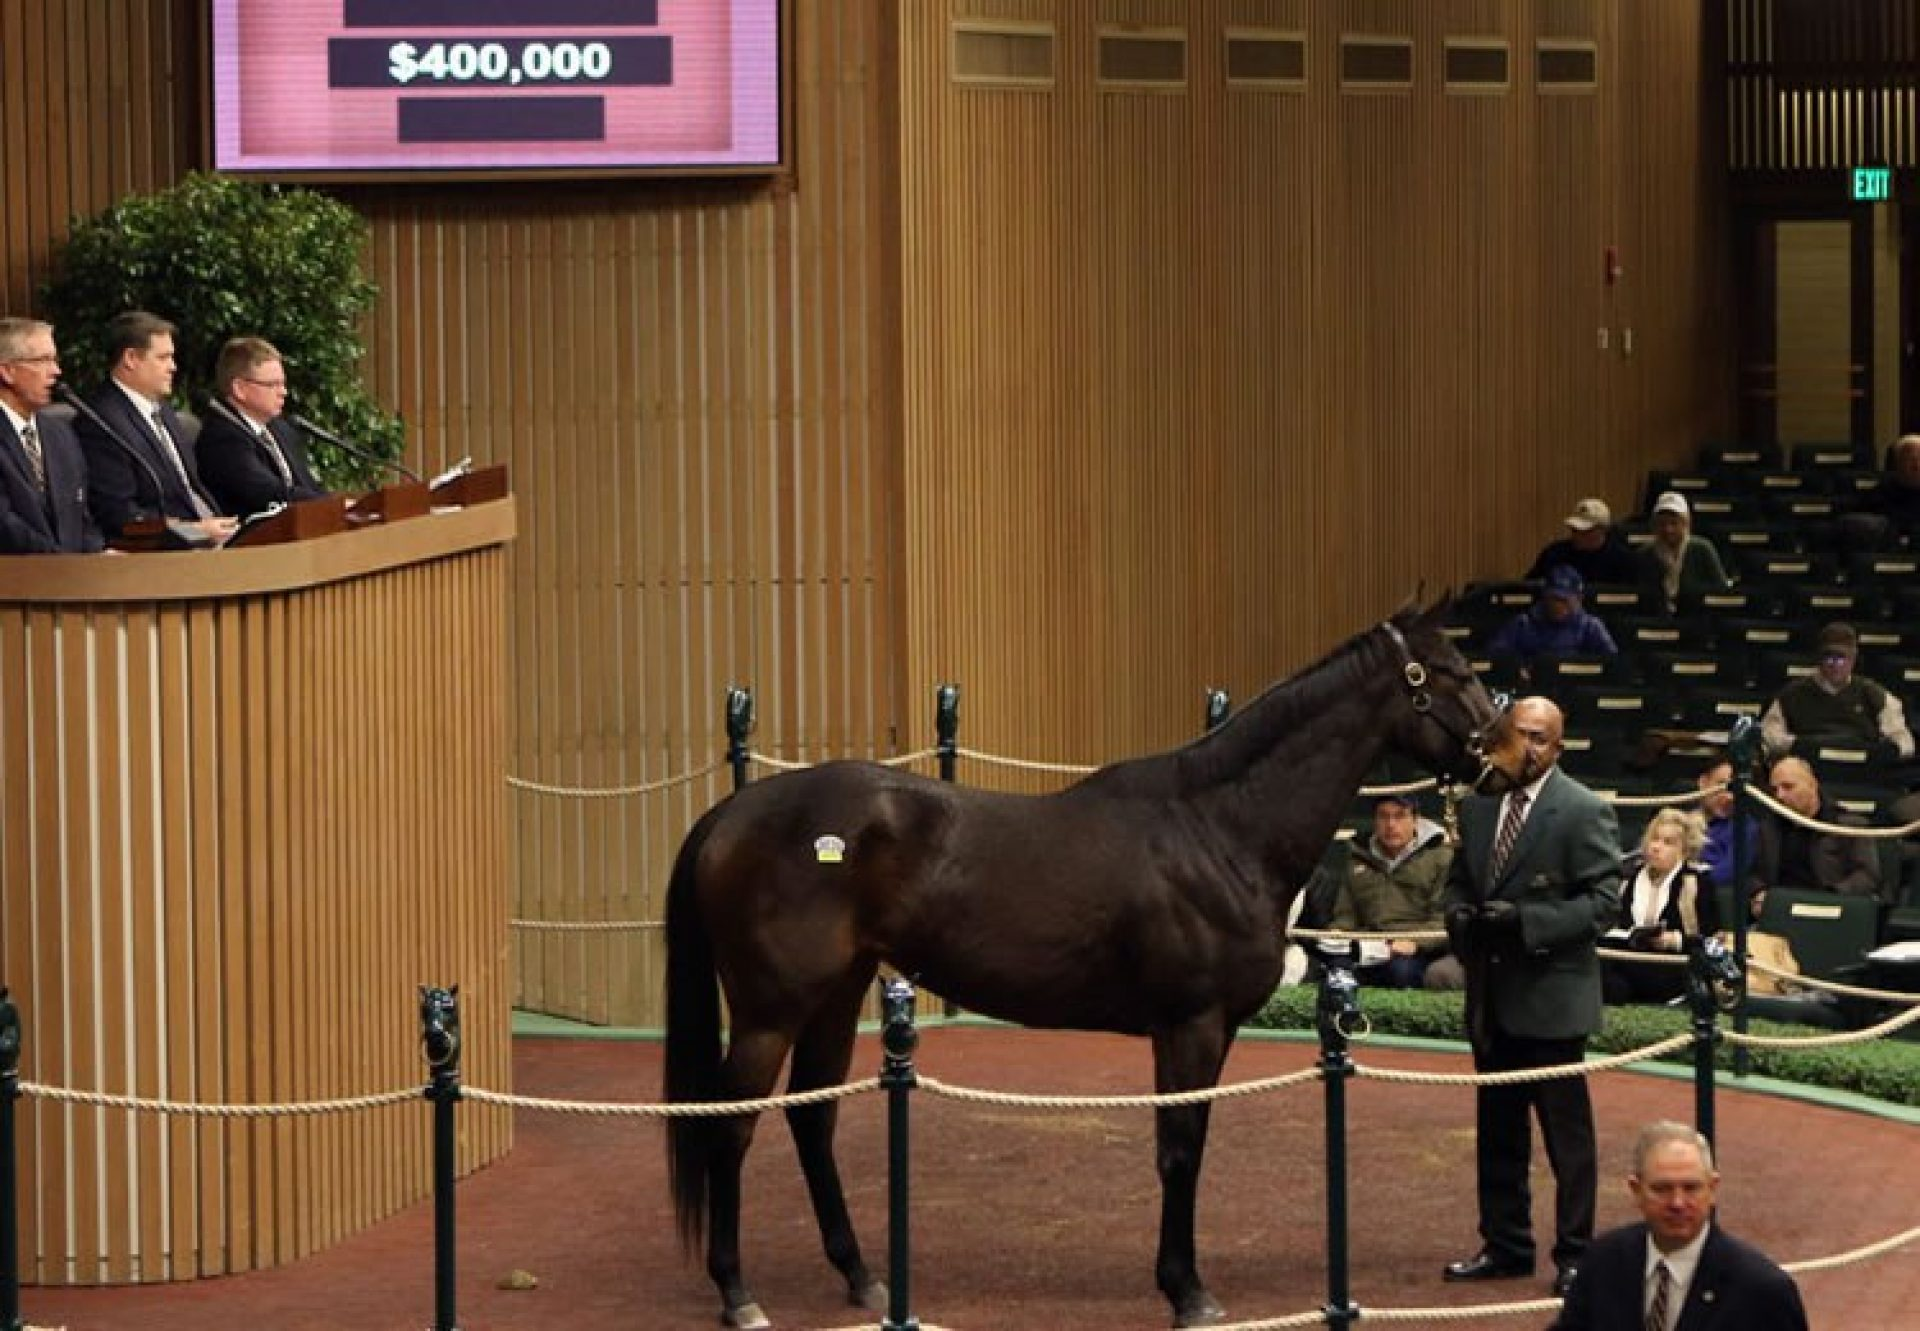 Premier Steps (Footstepsinthesand) selling for $400,000 at Keeneland